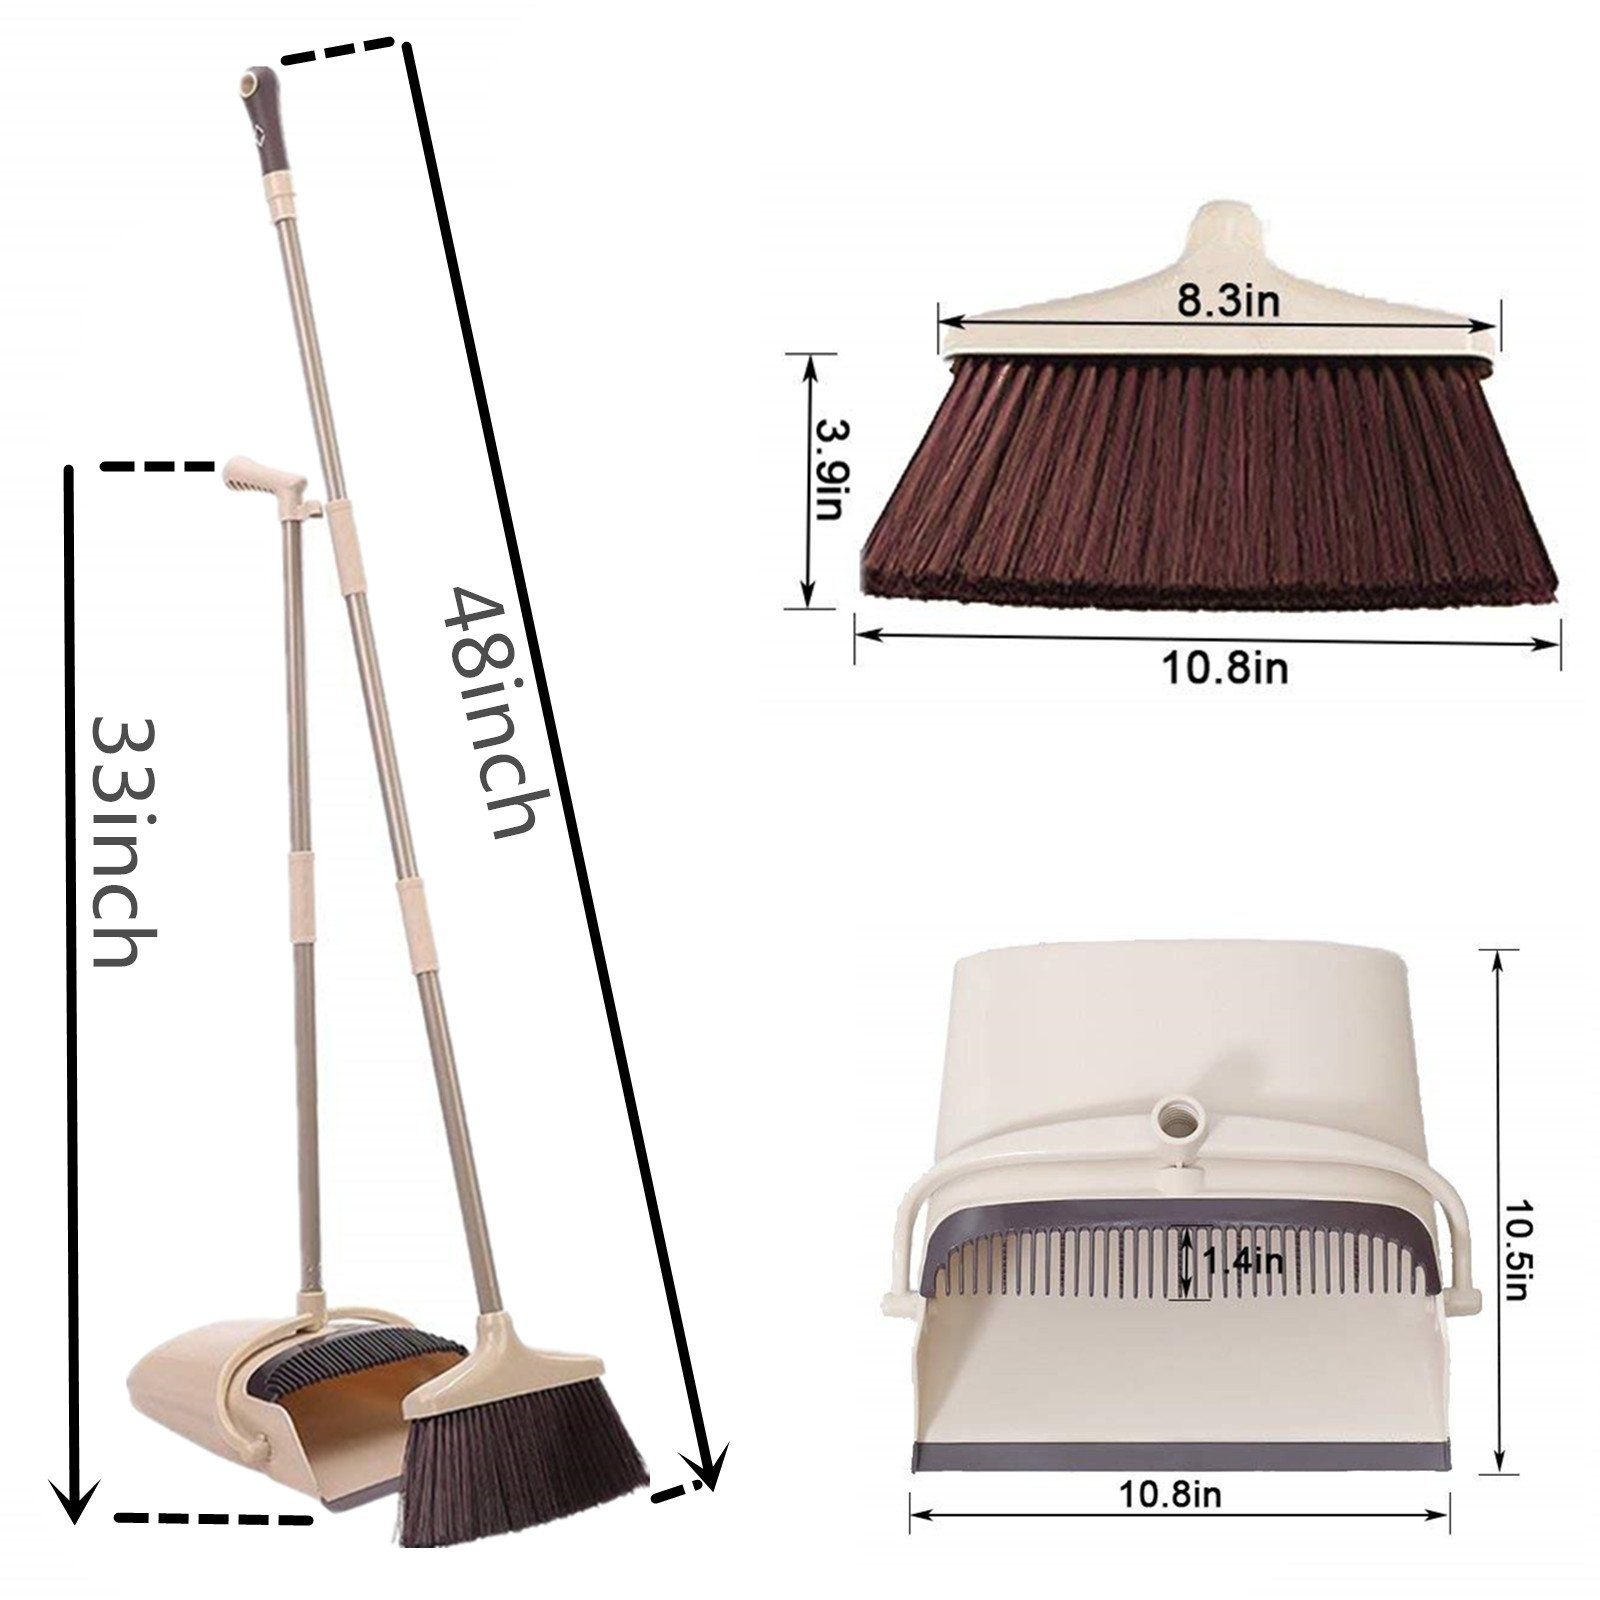 Broom and Dustpan Set, 48 inch Extendable Broom Standing Upright - Wind Proof - Foldable Sweep Set with Soft Bristles & Rubber Edge & Dust Pan with Teeth, Perfect for Kitchen, Garden, Office, etc. by SerBion (Image #2)